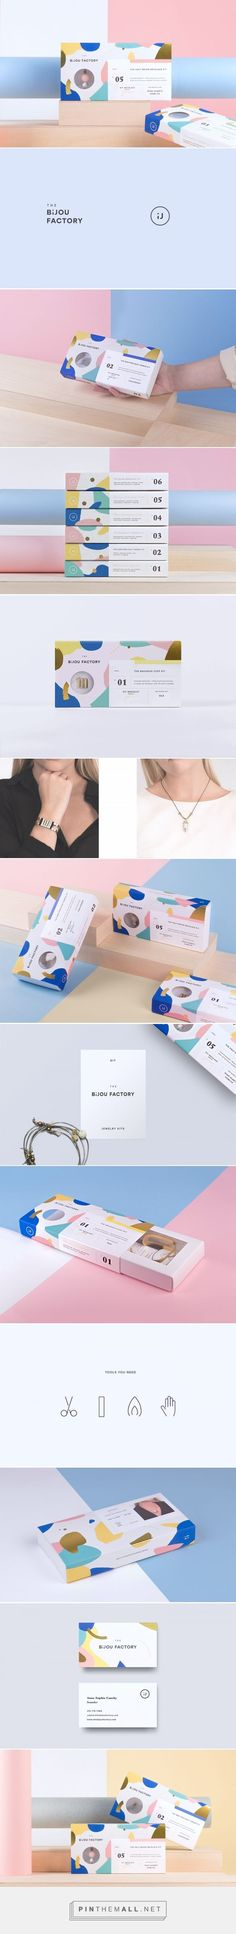 The Bijou Factory DIY Jewelry packaging design by Phoenix The Creative Studio - http://www.packagingoftheworld.com/2017/02/the-bijou-factory.html